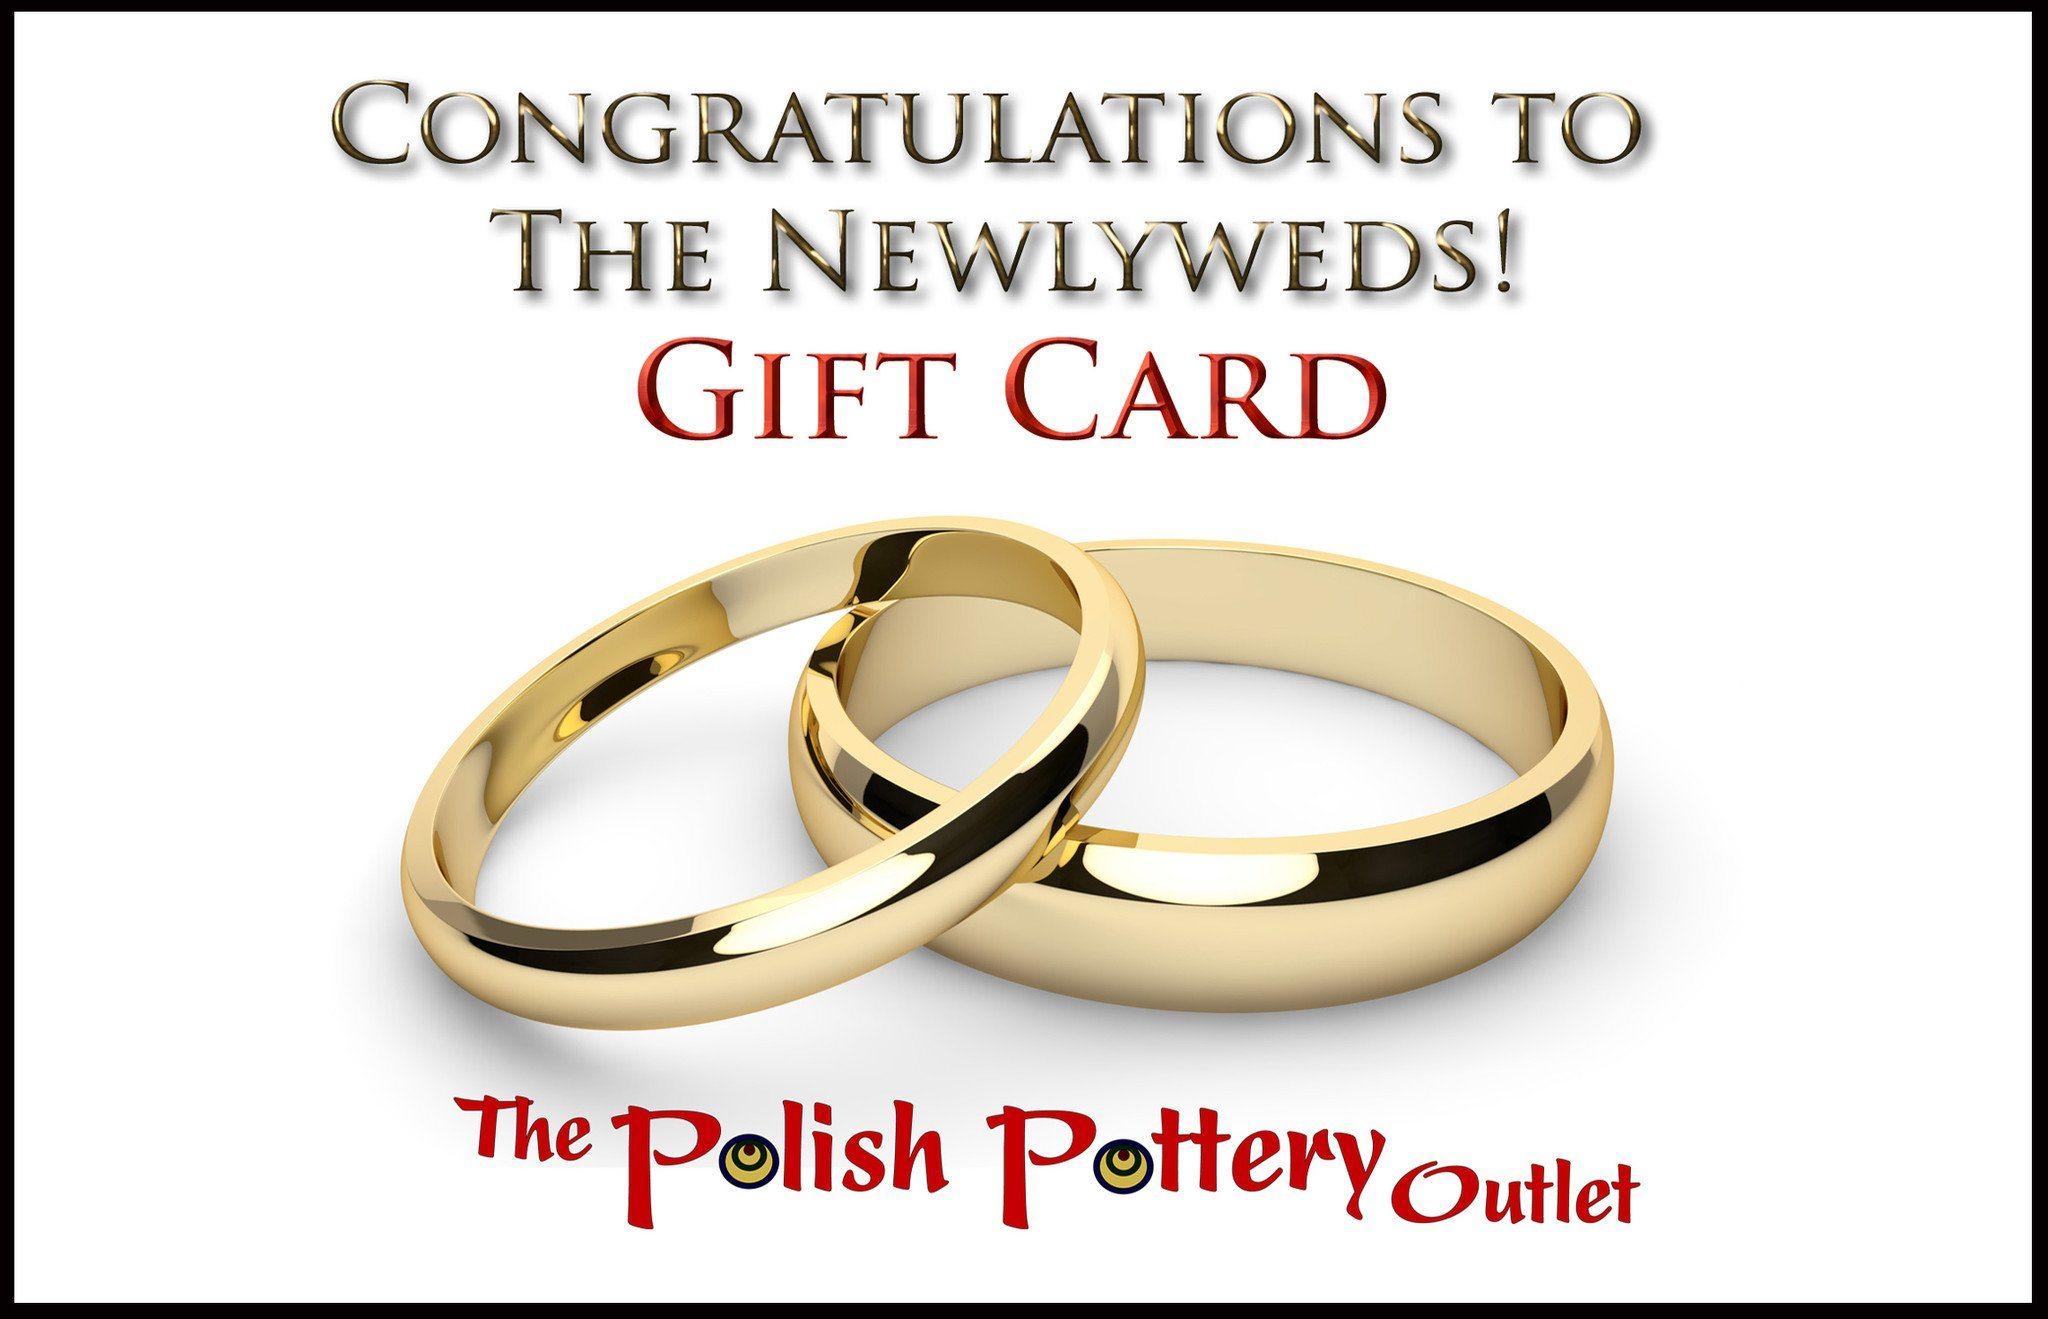 Wedding Gift Card The Polish Pottery Outlet